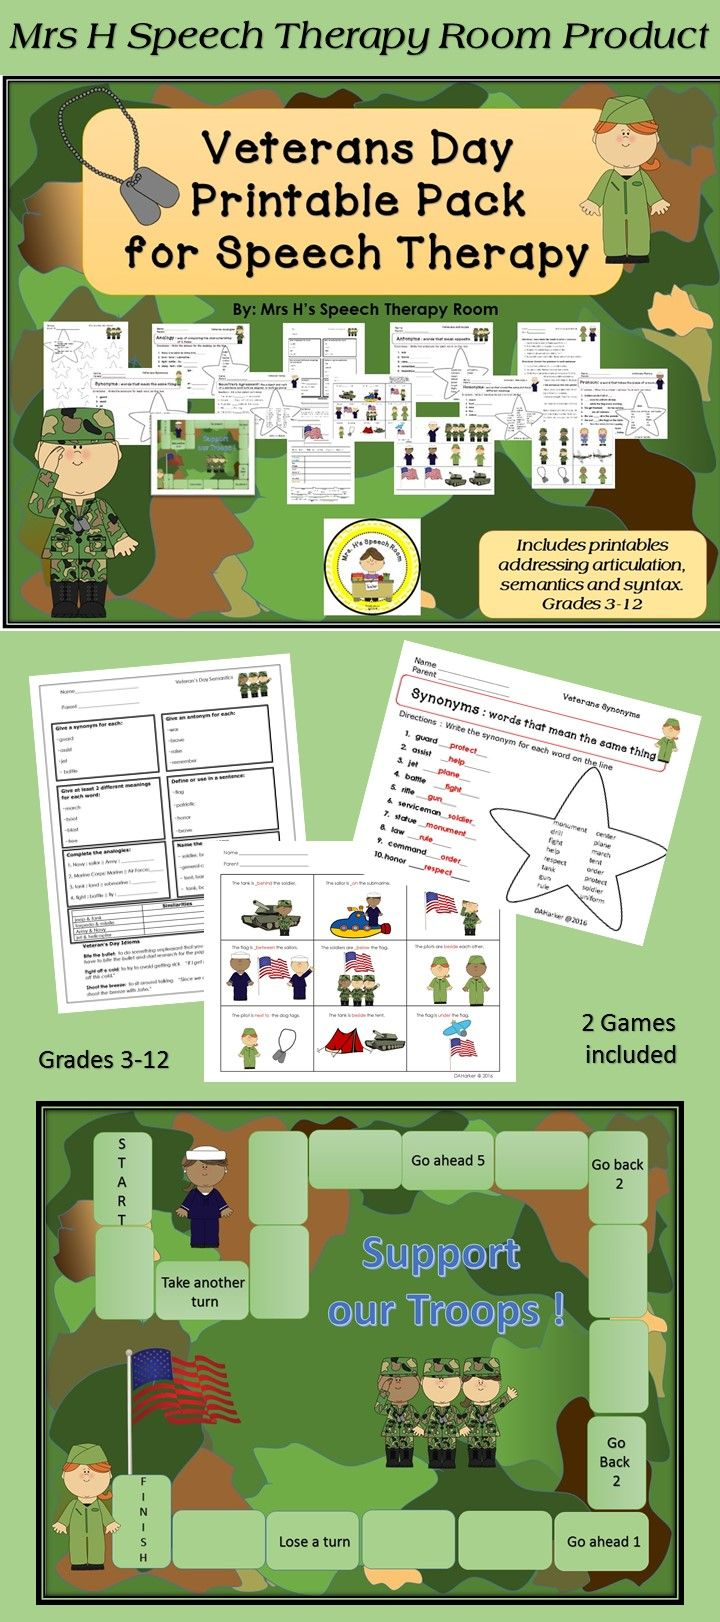 17 Best ideas about Plurals Worksheets on Pinterest  Spanish  alphabet worksheets, grade worksheets, math worksheets, learning, worksheets, and education 5th Grade Analogy Worksheets 2 1622 x 720